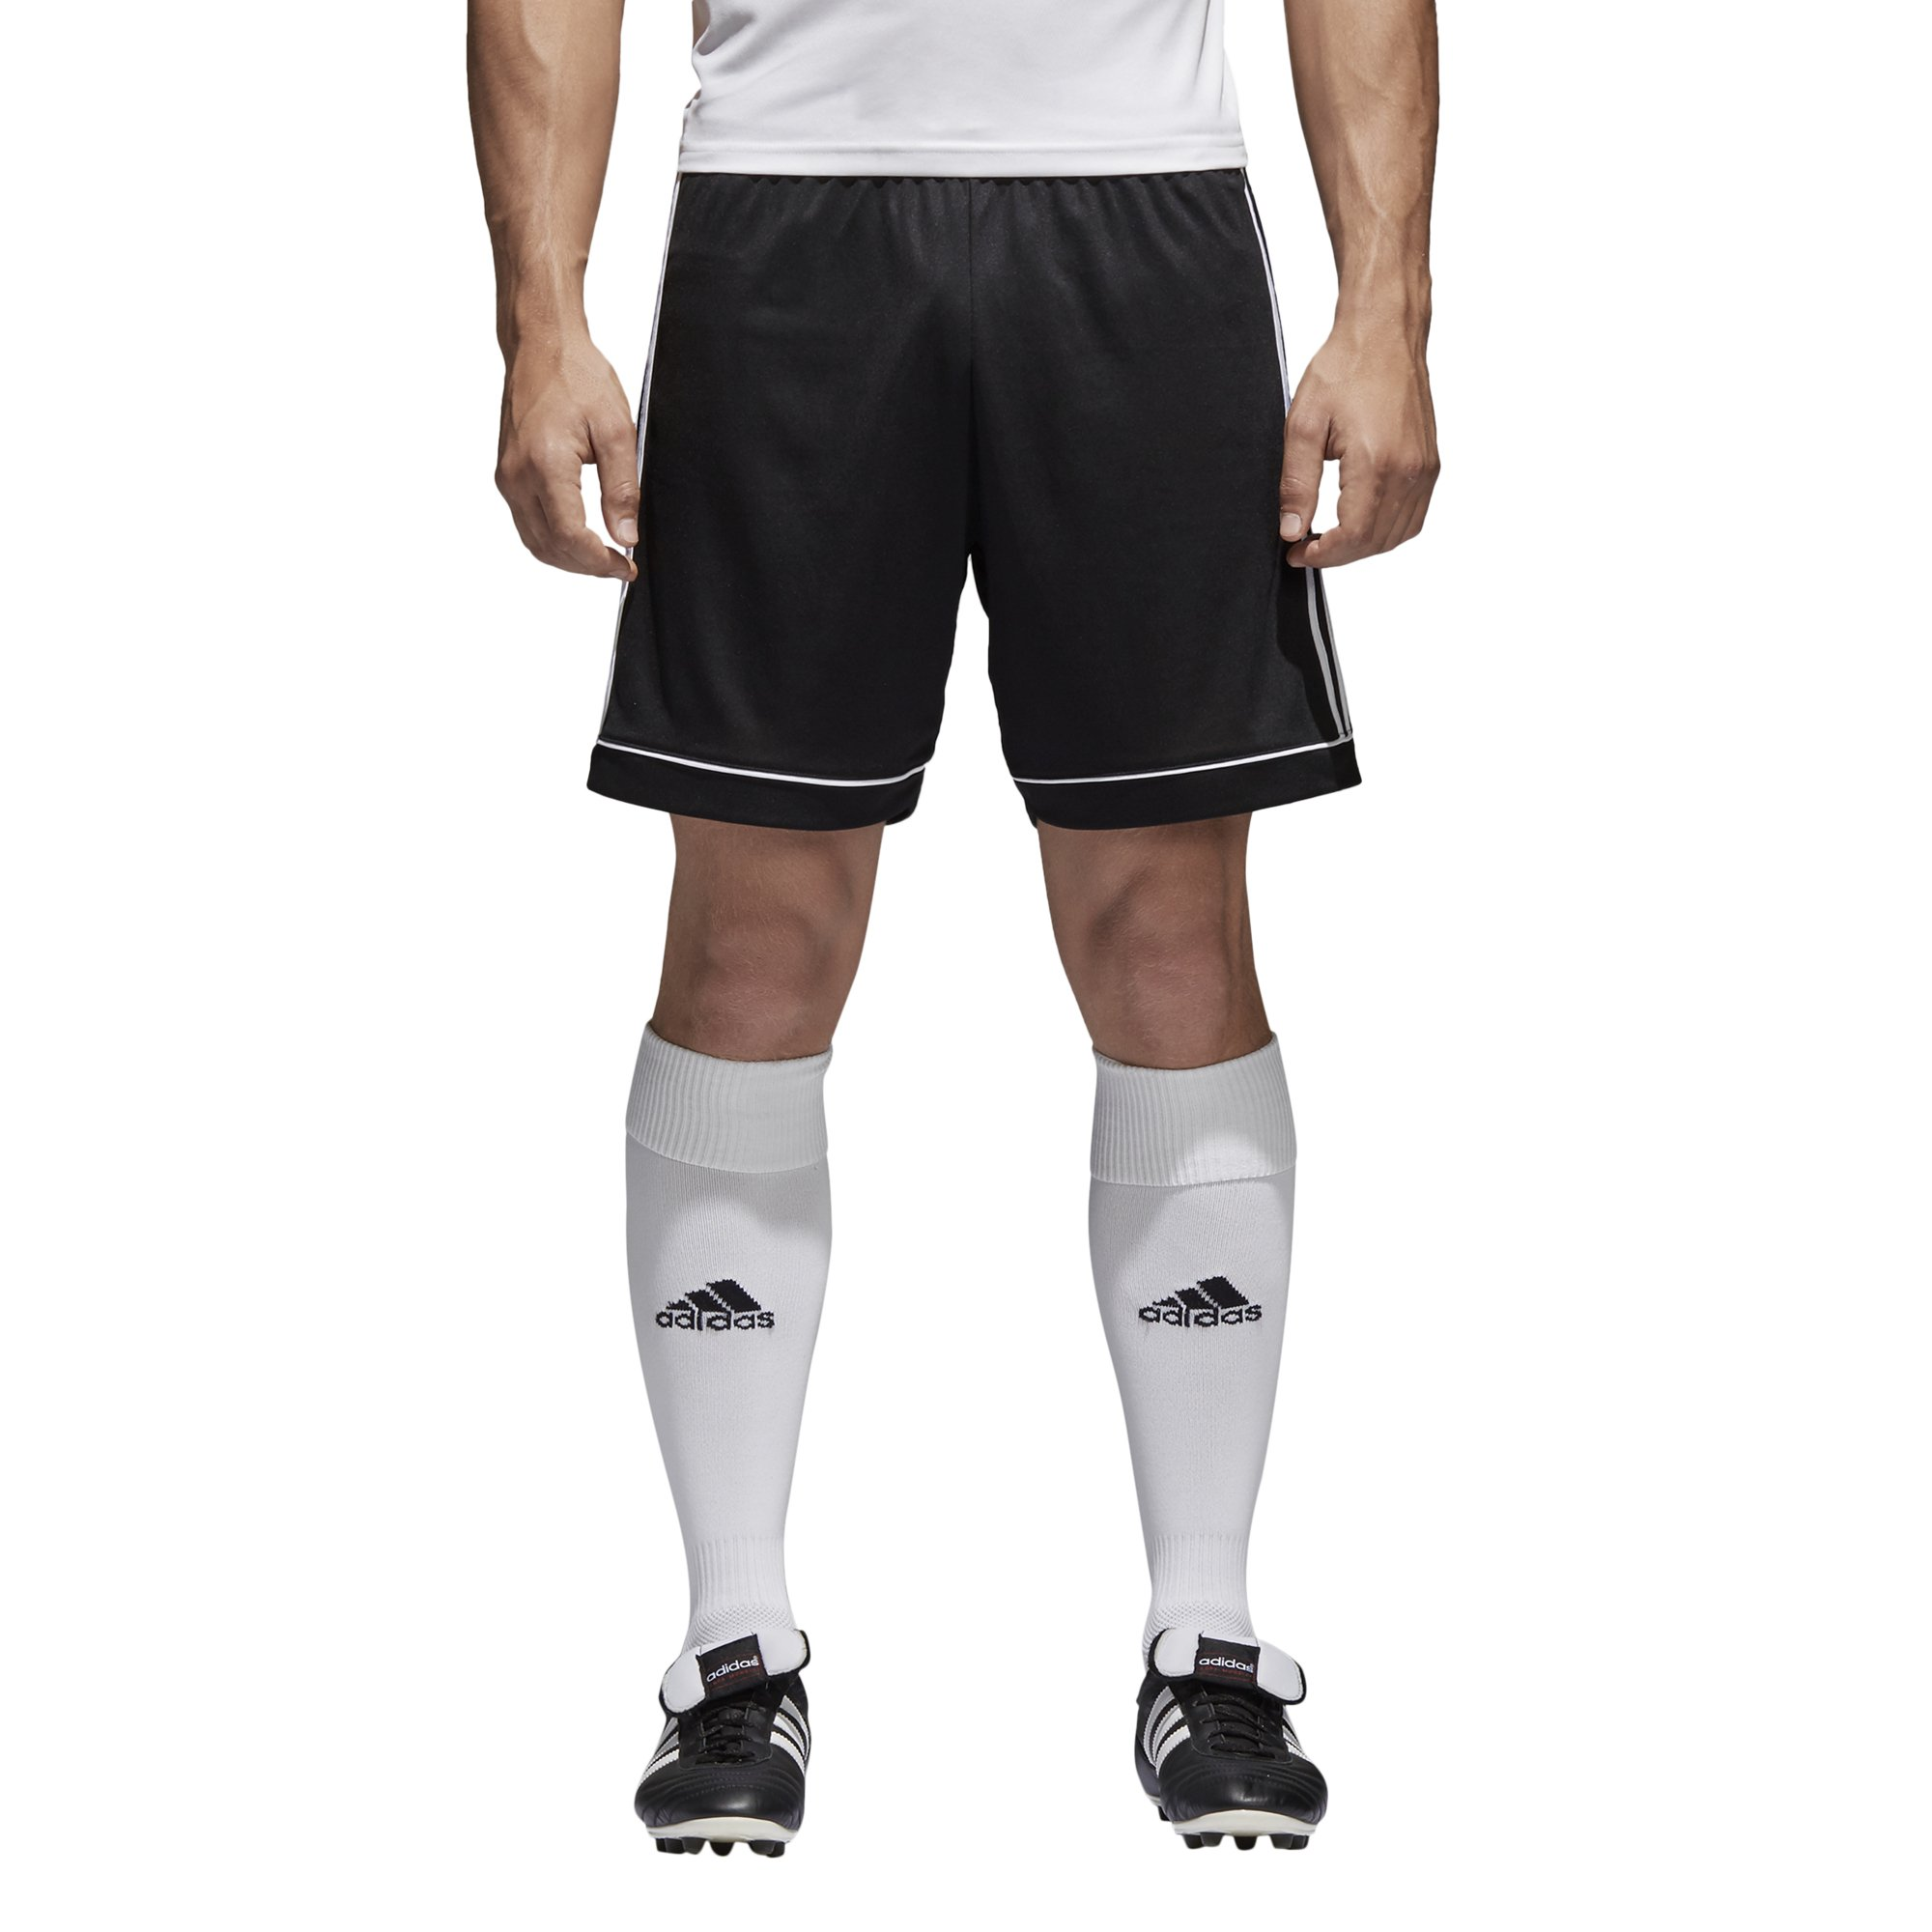 d5c3a552d0 Best Rated in Men's Soccer Shorts & Helpful Customer Reviews ...